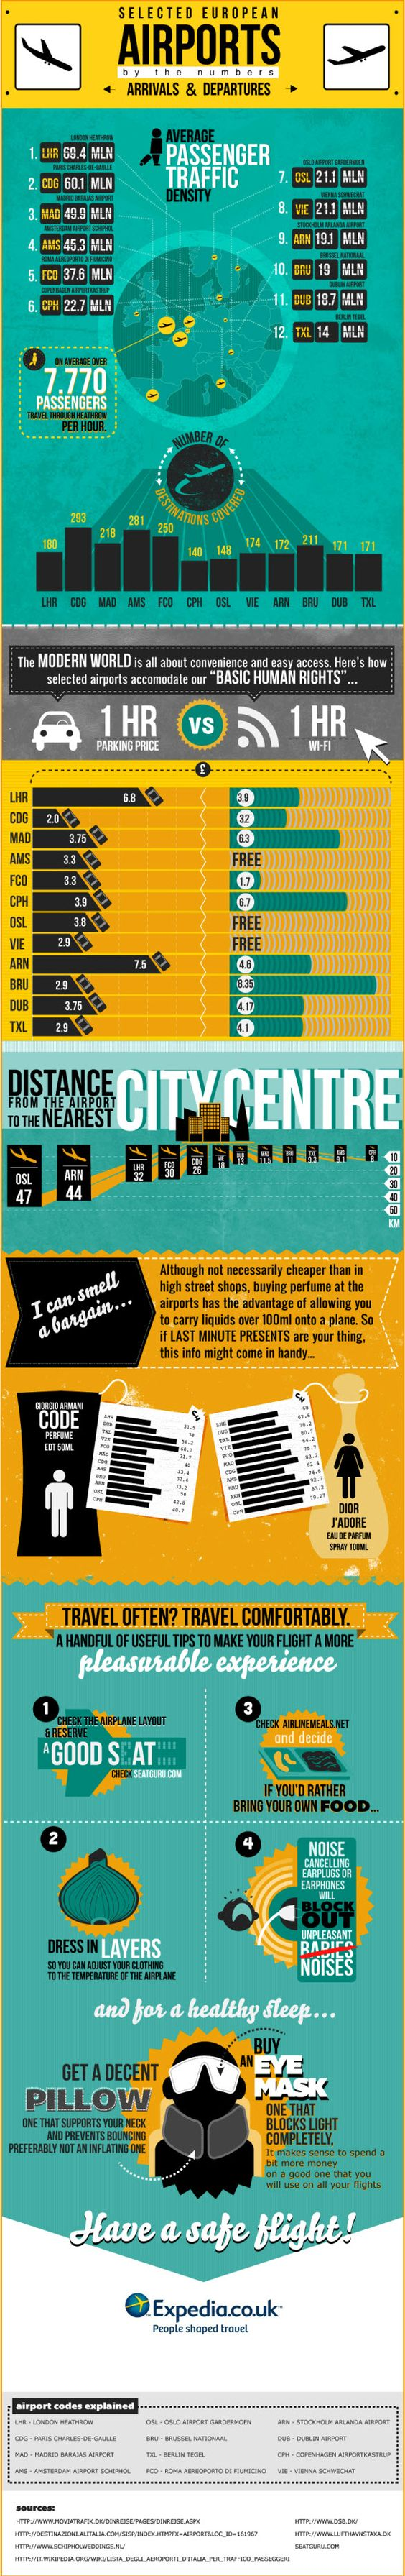 Airports infographic